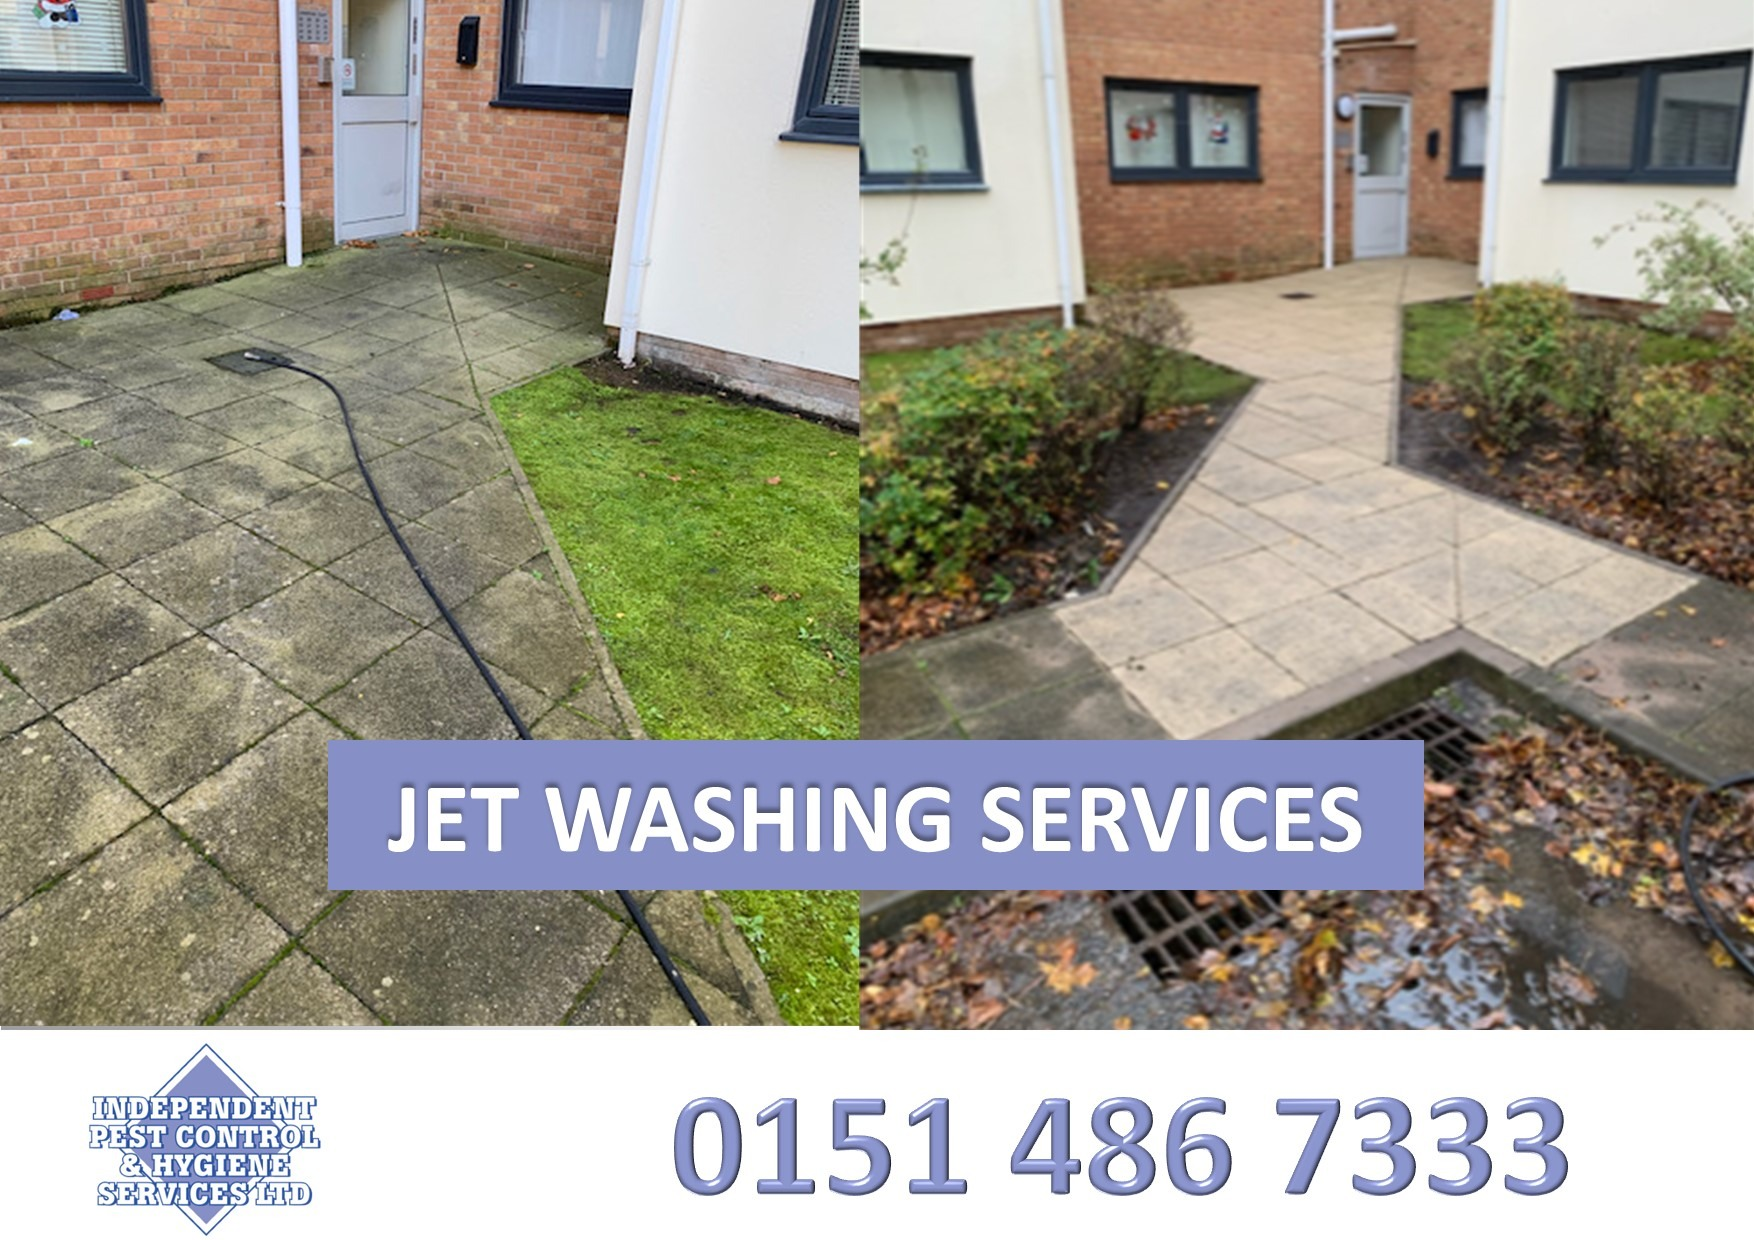 An image showcasing our canopy cleaning as part of our hygiene services.